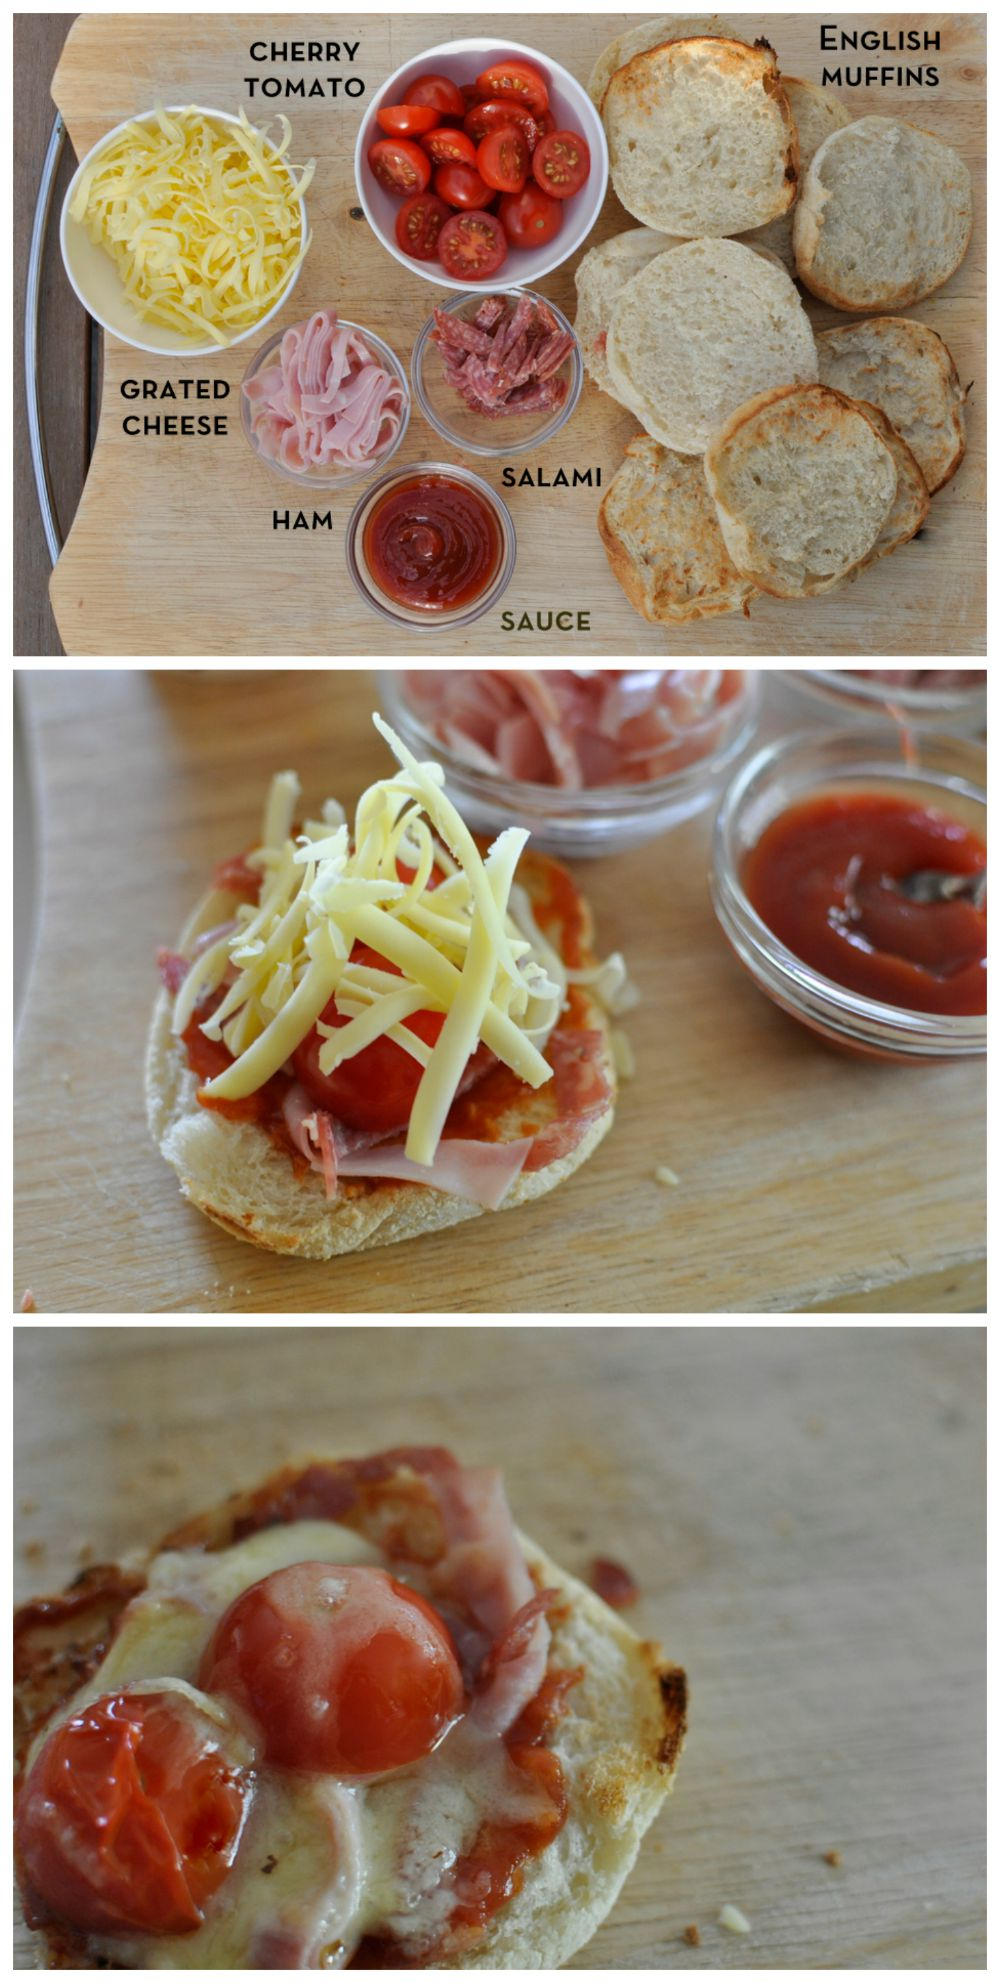 Here's a fun snack idea for kids - do mini pizza with English muffins